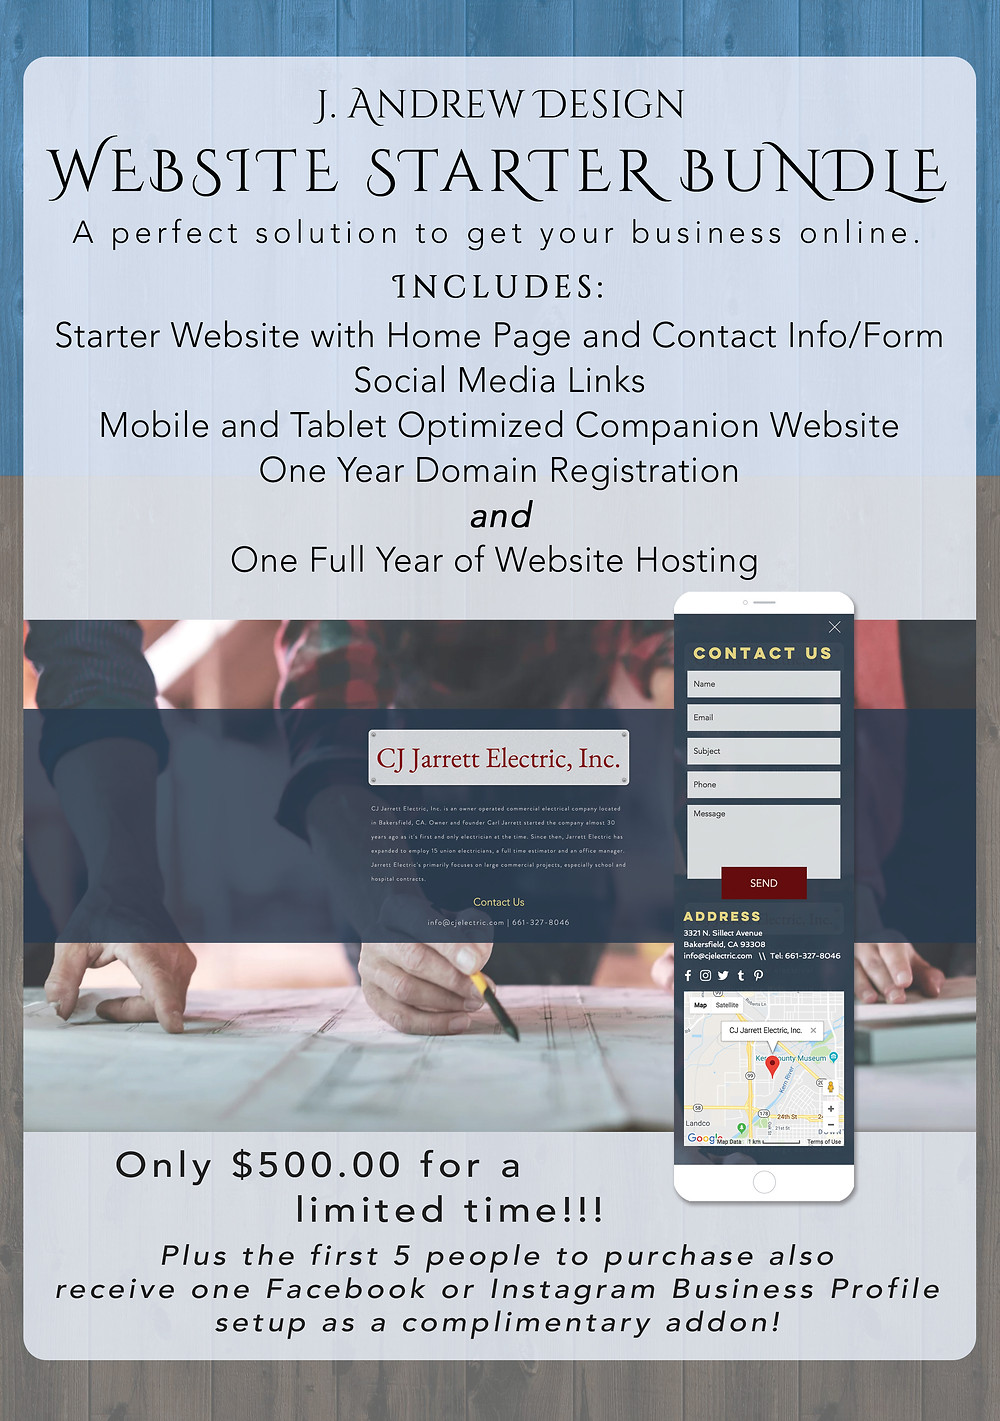 Get your business online right away!!!